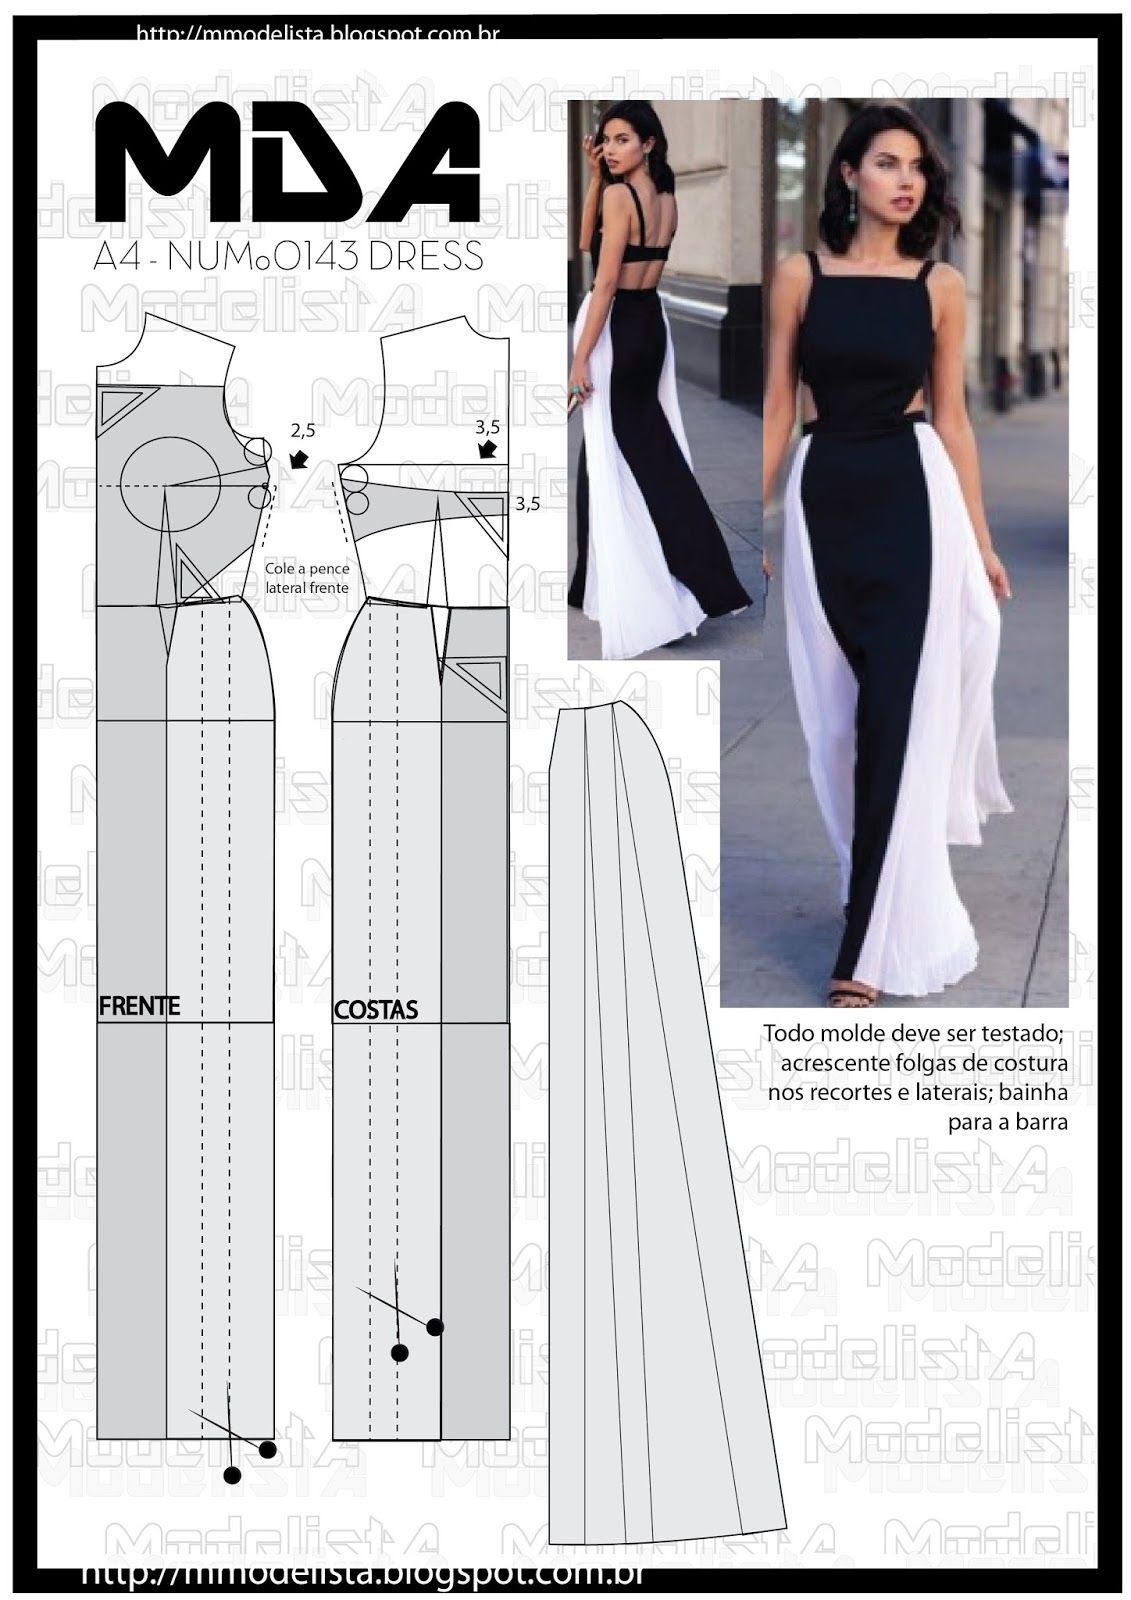 A4 NUMo 0143 DRESS BLACK AND WHITE   Sewing   Pinterest   Costura ...